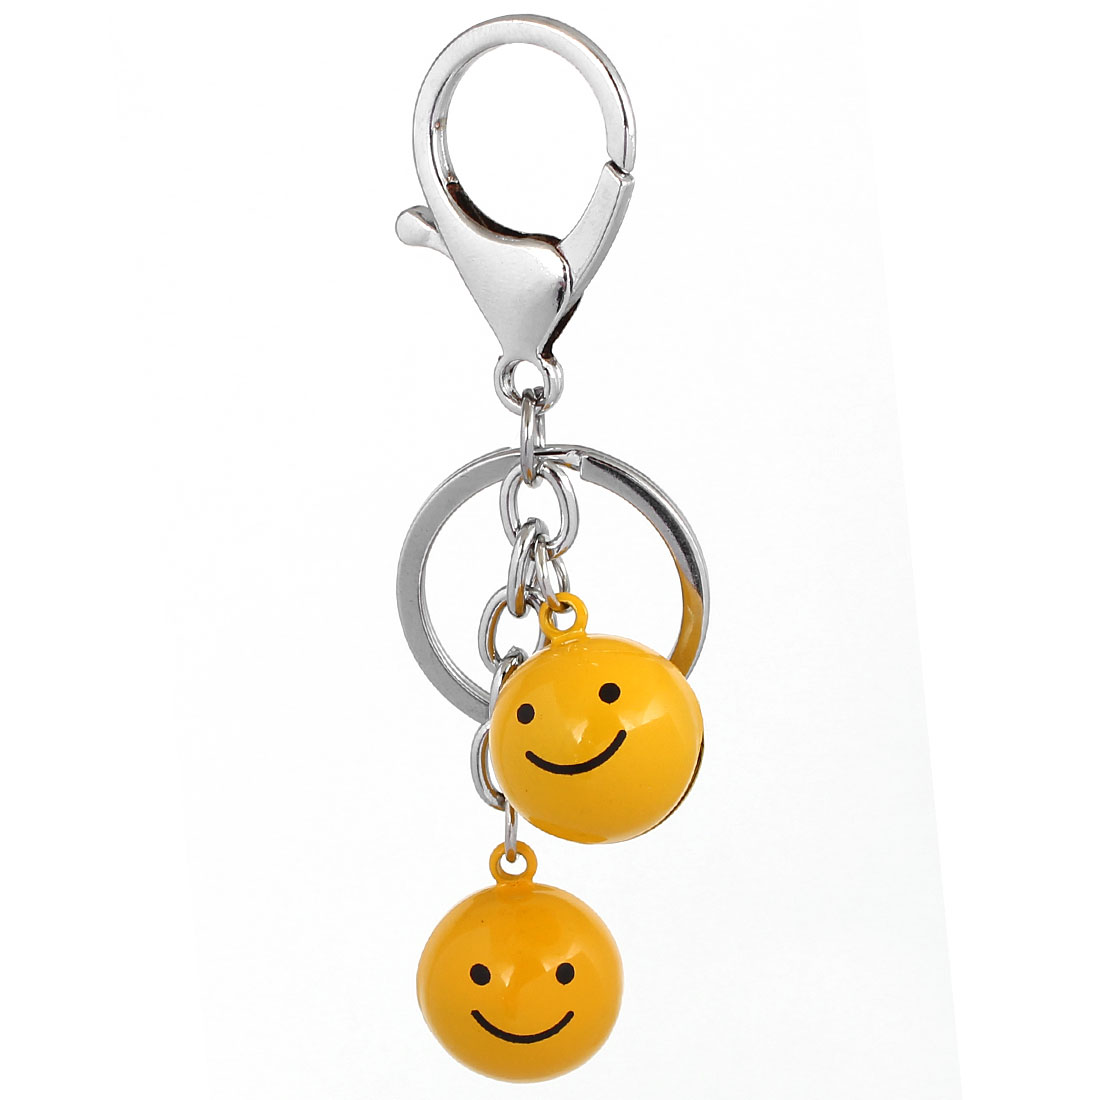 Yellow Smile Happy Face Key Chain Keyring Hanging Pendant